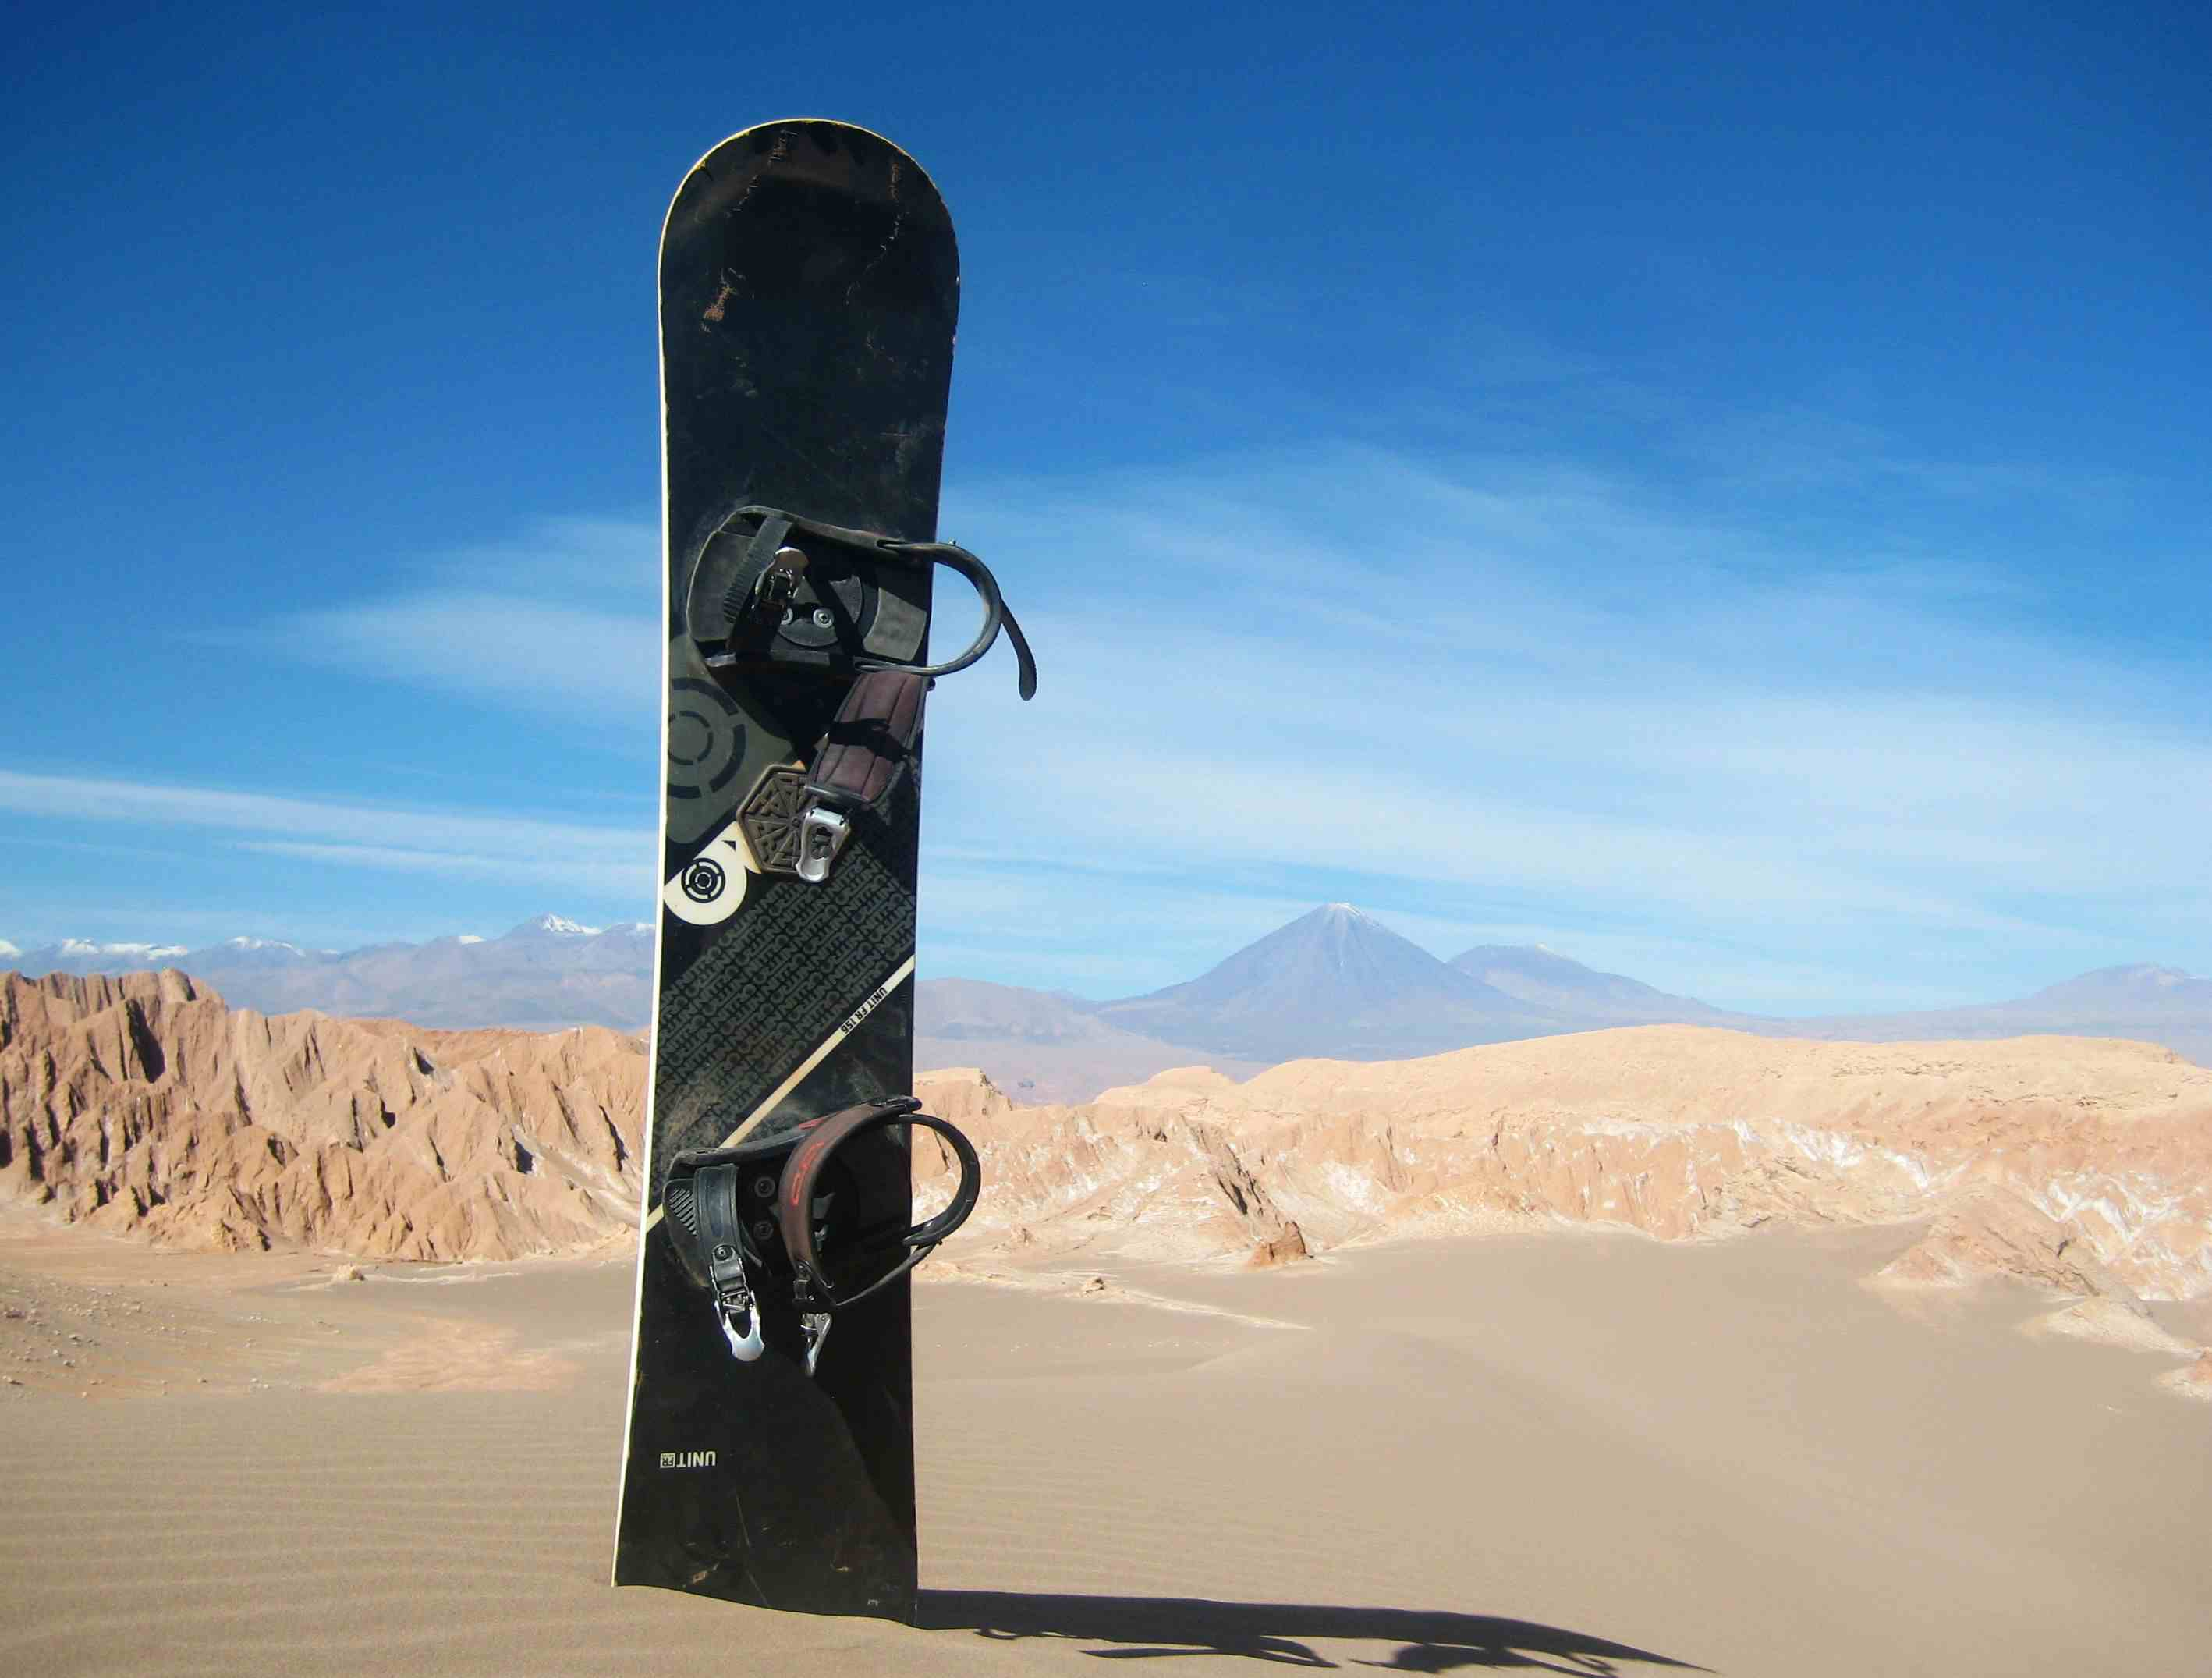 Snowboard sticking out of the sand in the Atacama Desert